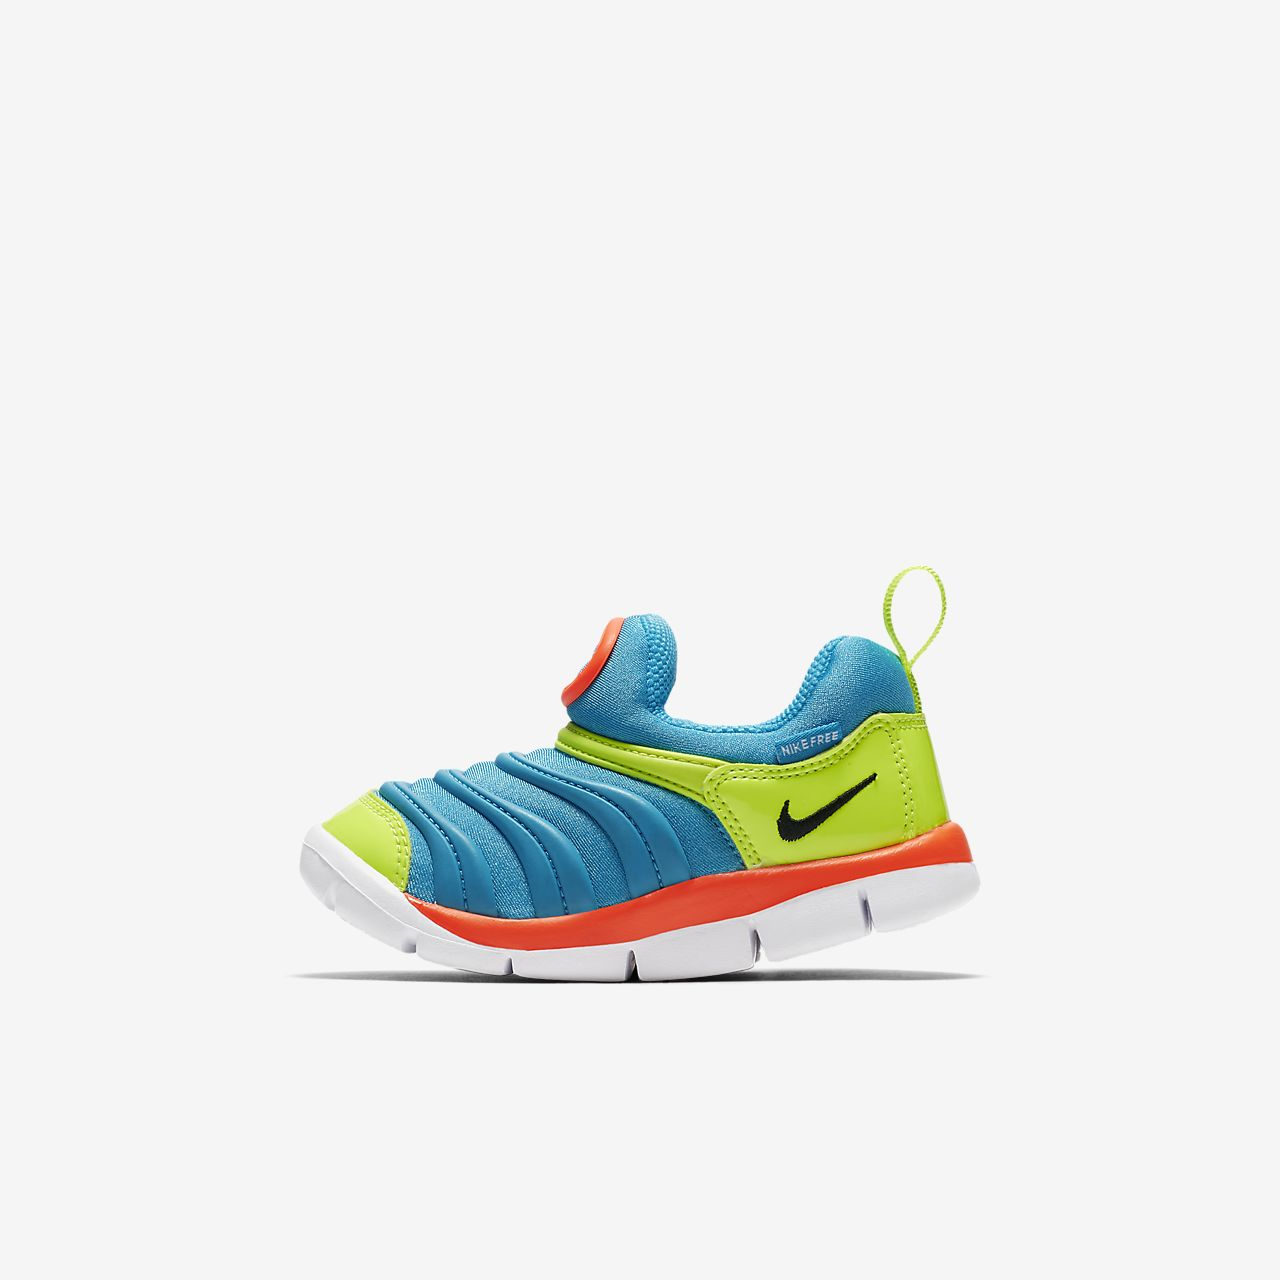 ... Nike Dynamo Free Infant/Toddler Kids' Shoe